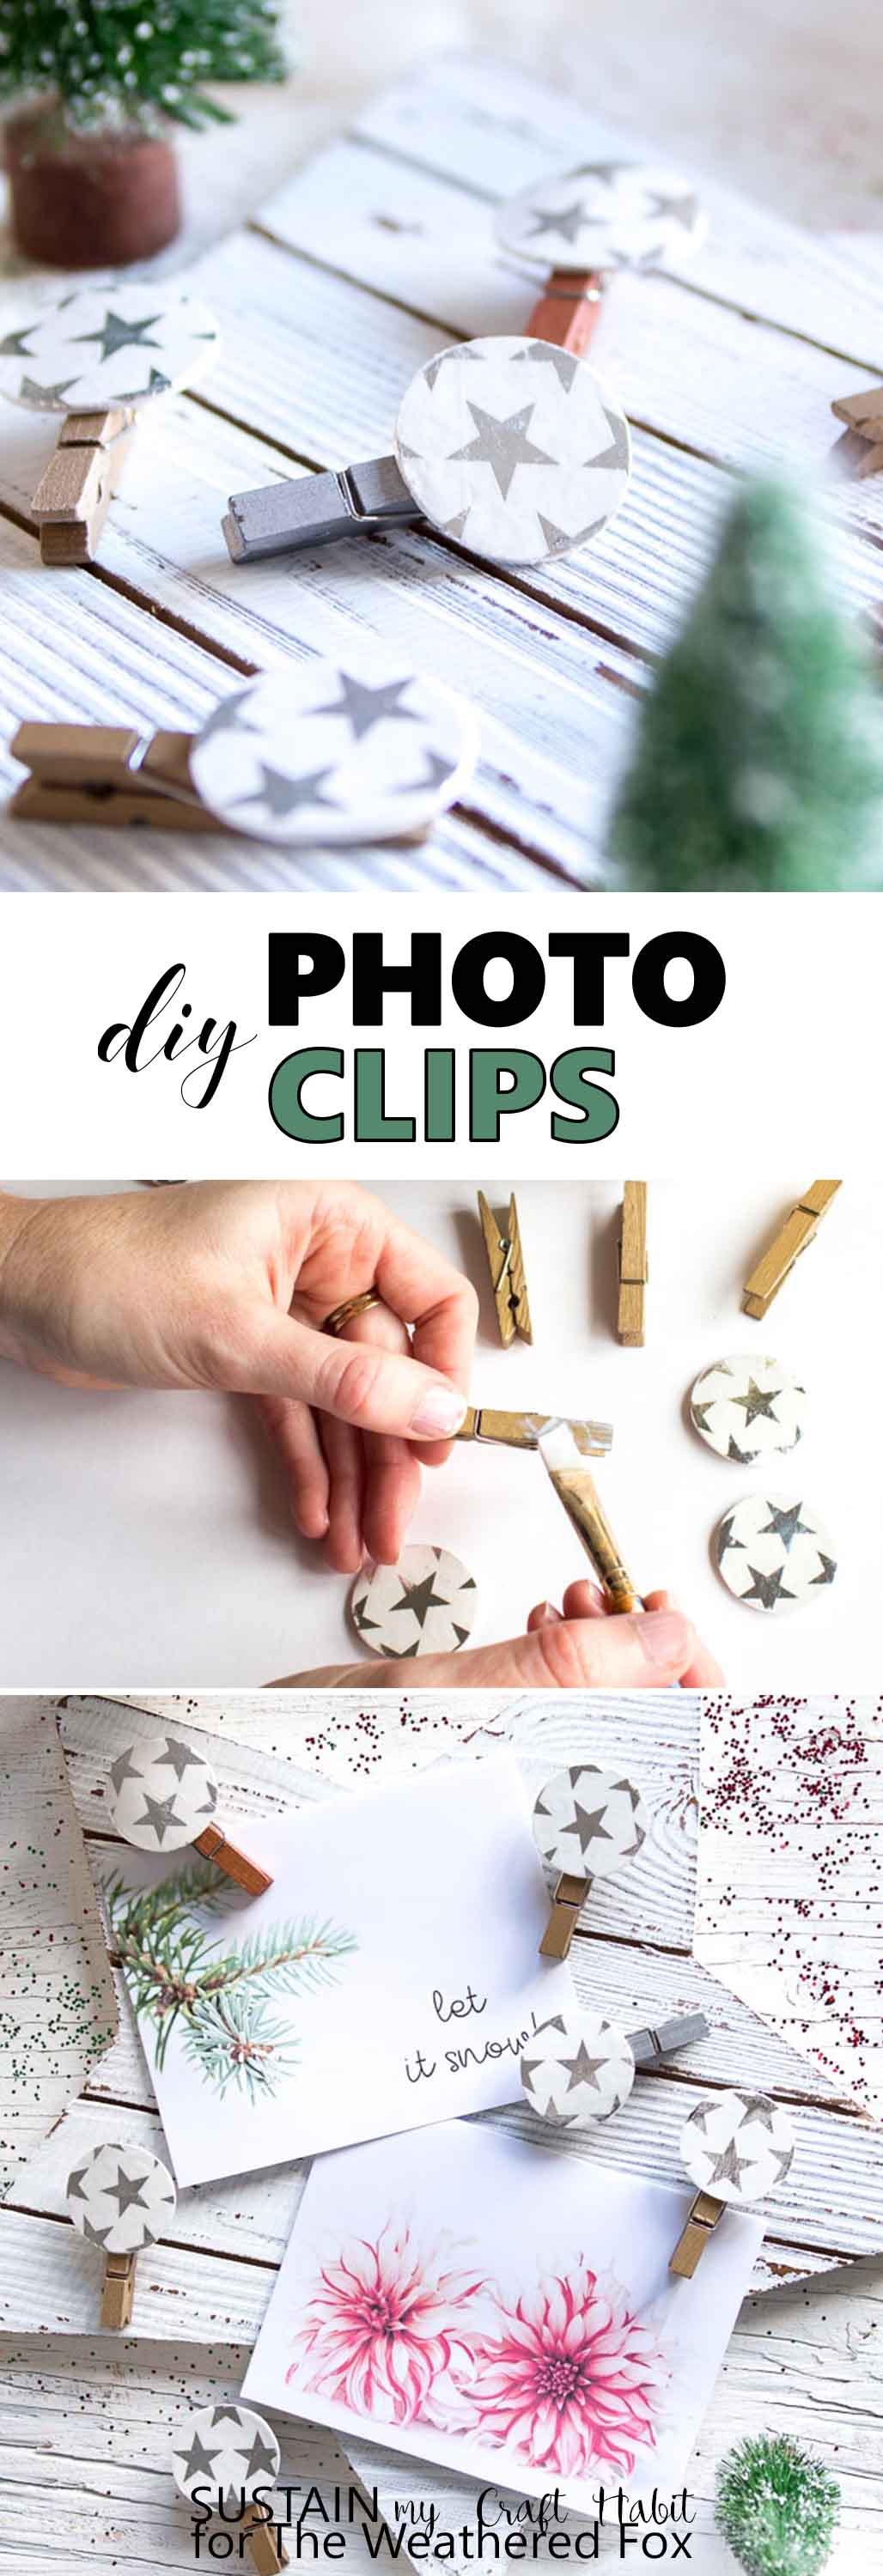 Make these adorable DIY photo clips for your Christmas card display or family photos. Crafts with wood circles. Christmas mantel greeting card display. #Christmasmantel #decoupage #crafts #photodisplay